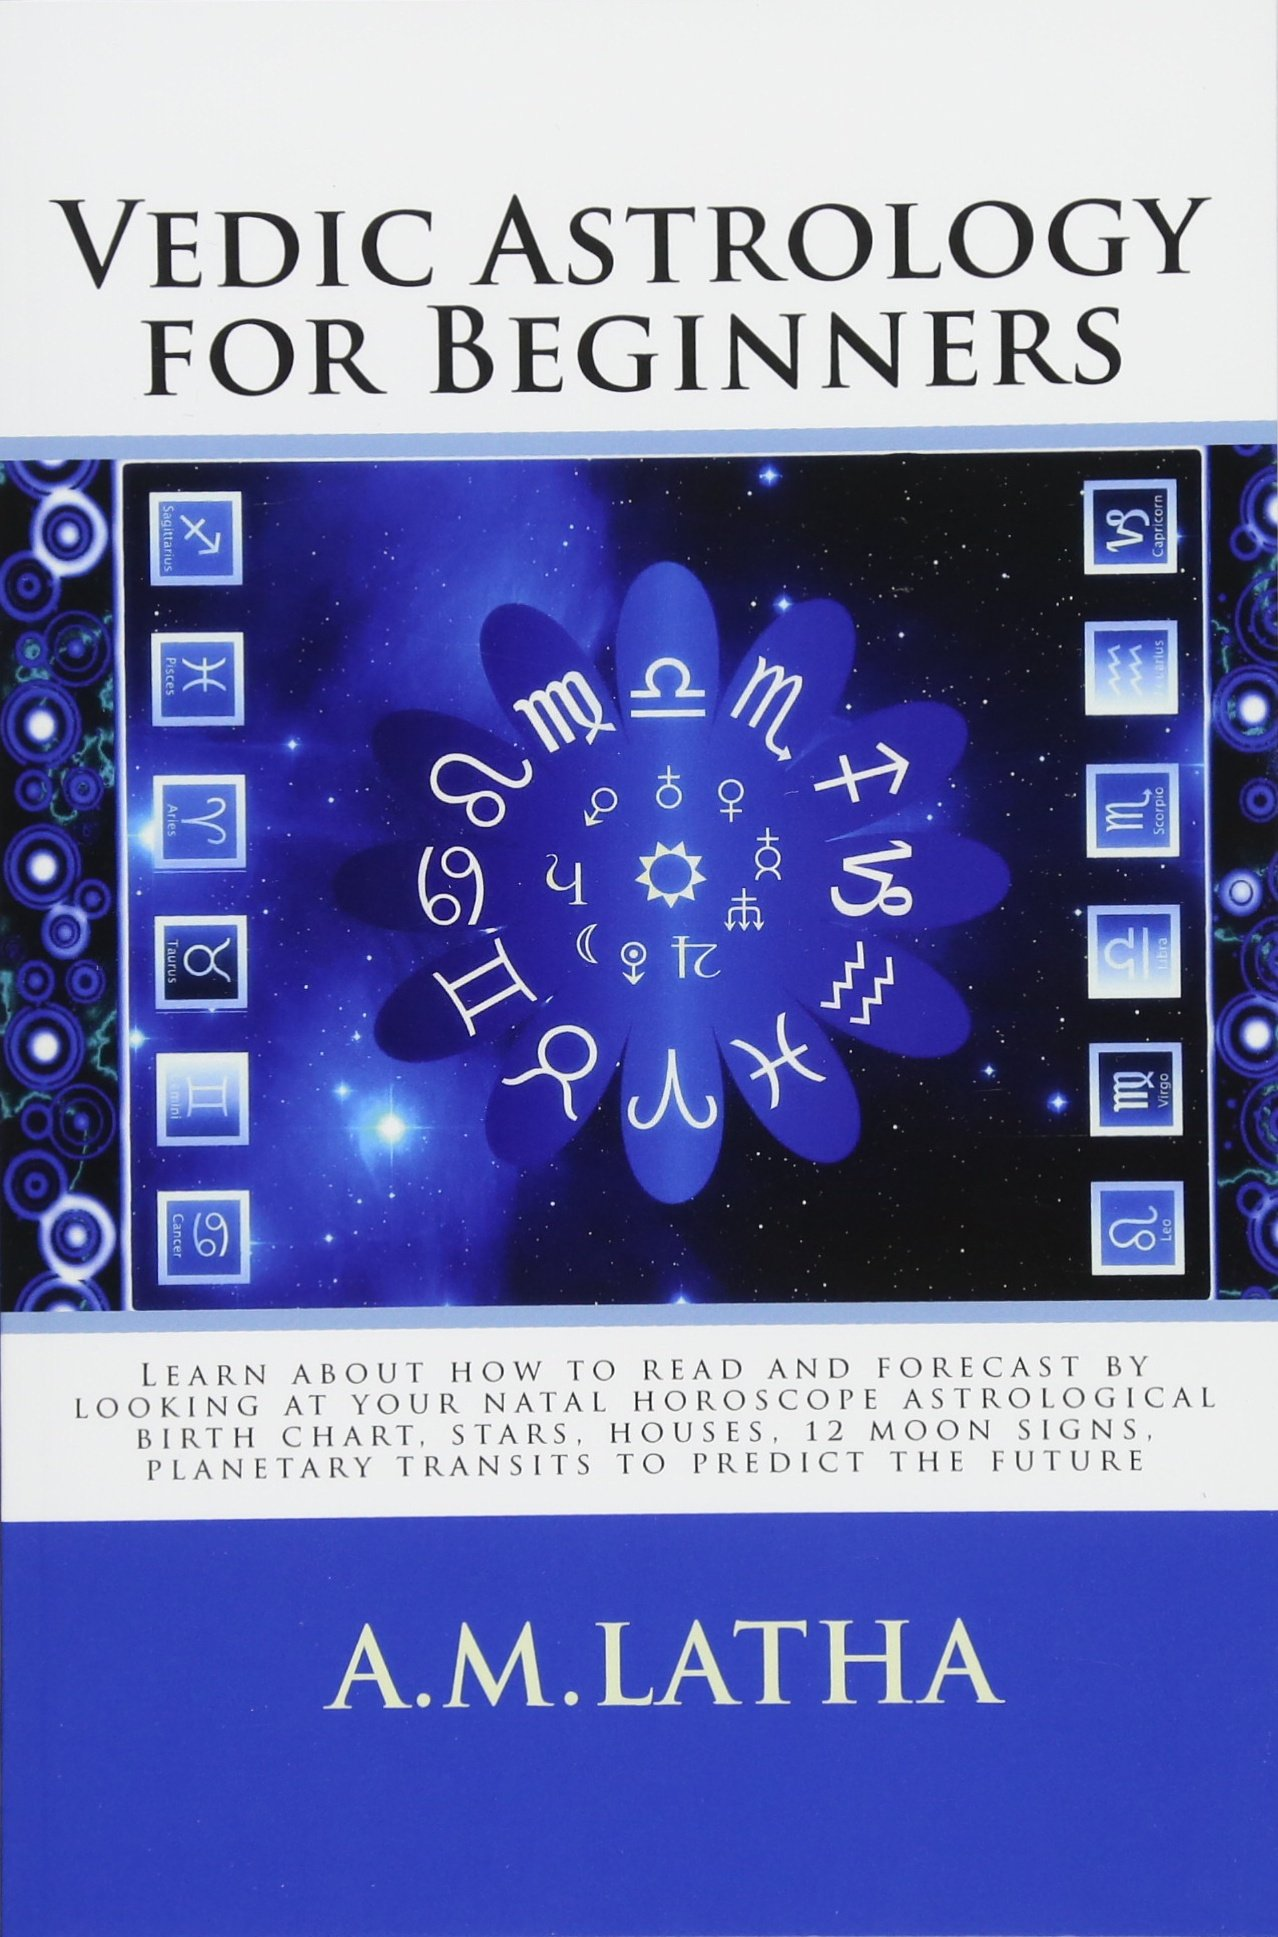 Vedic Astrology For Beginners A M Latha 9781541258778 Amazon Com Books